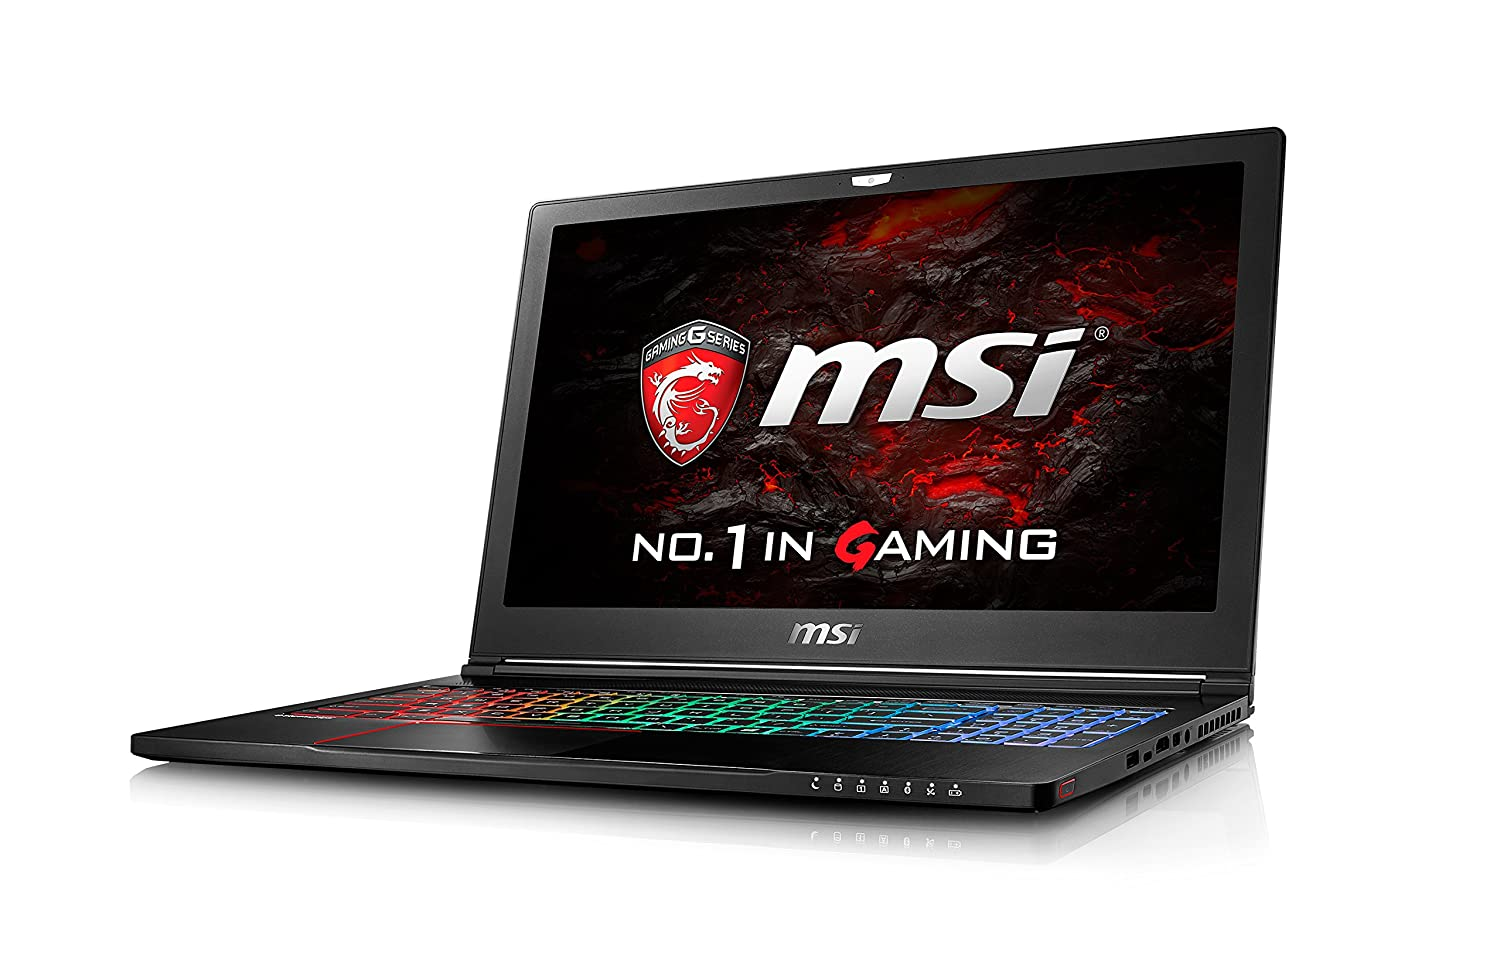 MSI Gaming GS63VR 7RF(Stealth Pro)-212UK 2.8GHz i7-7700HQ 15.6